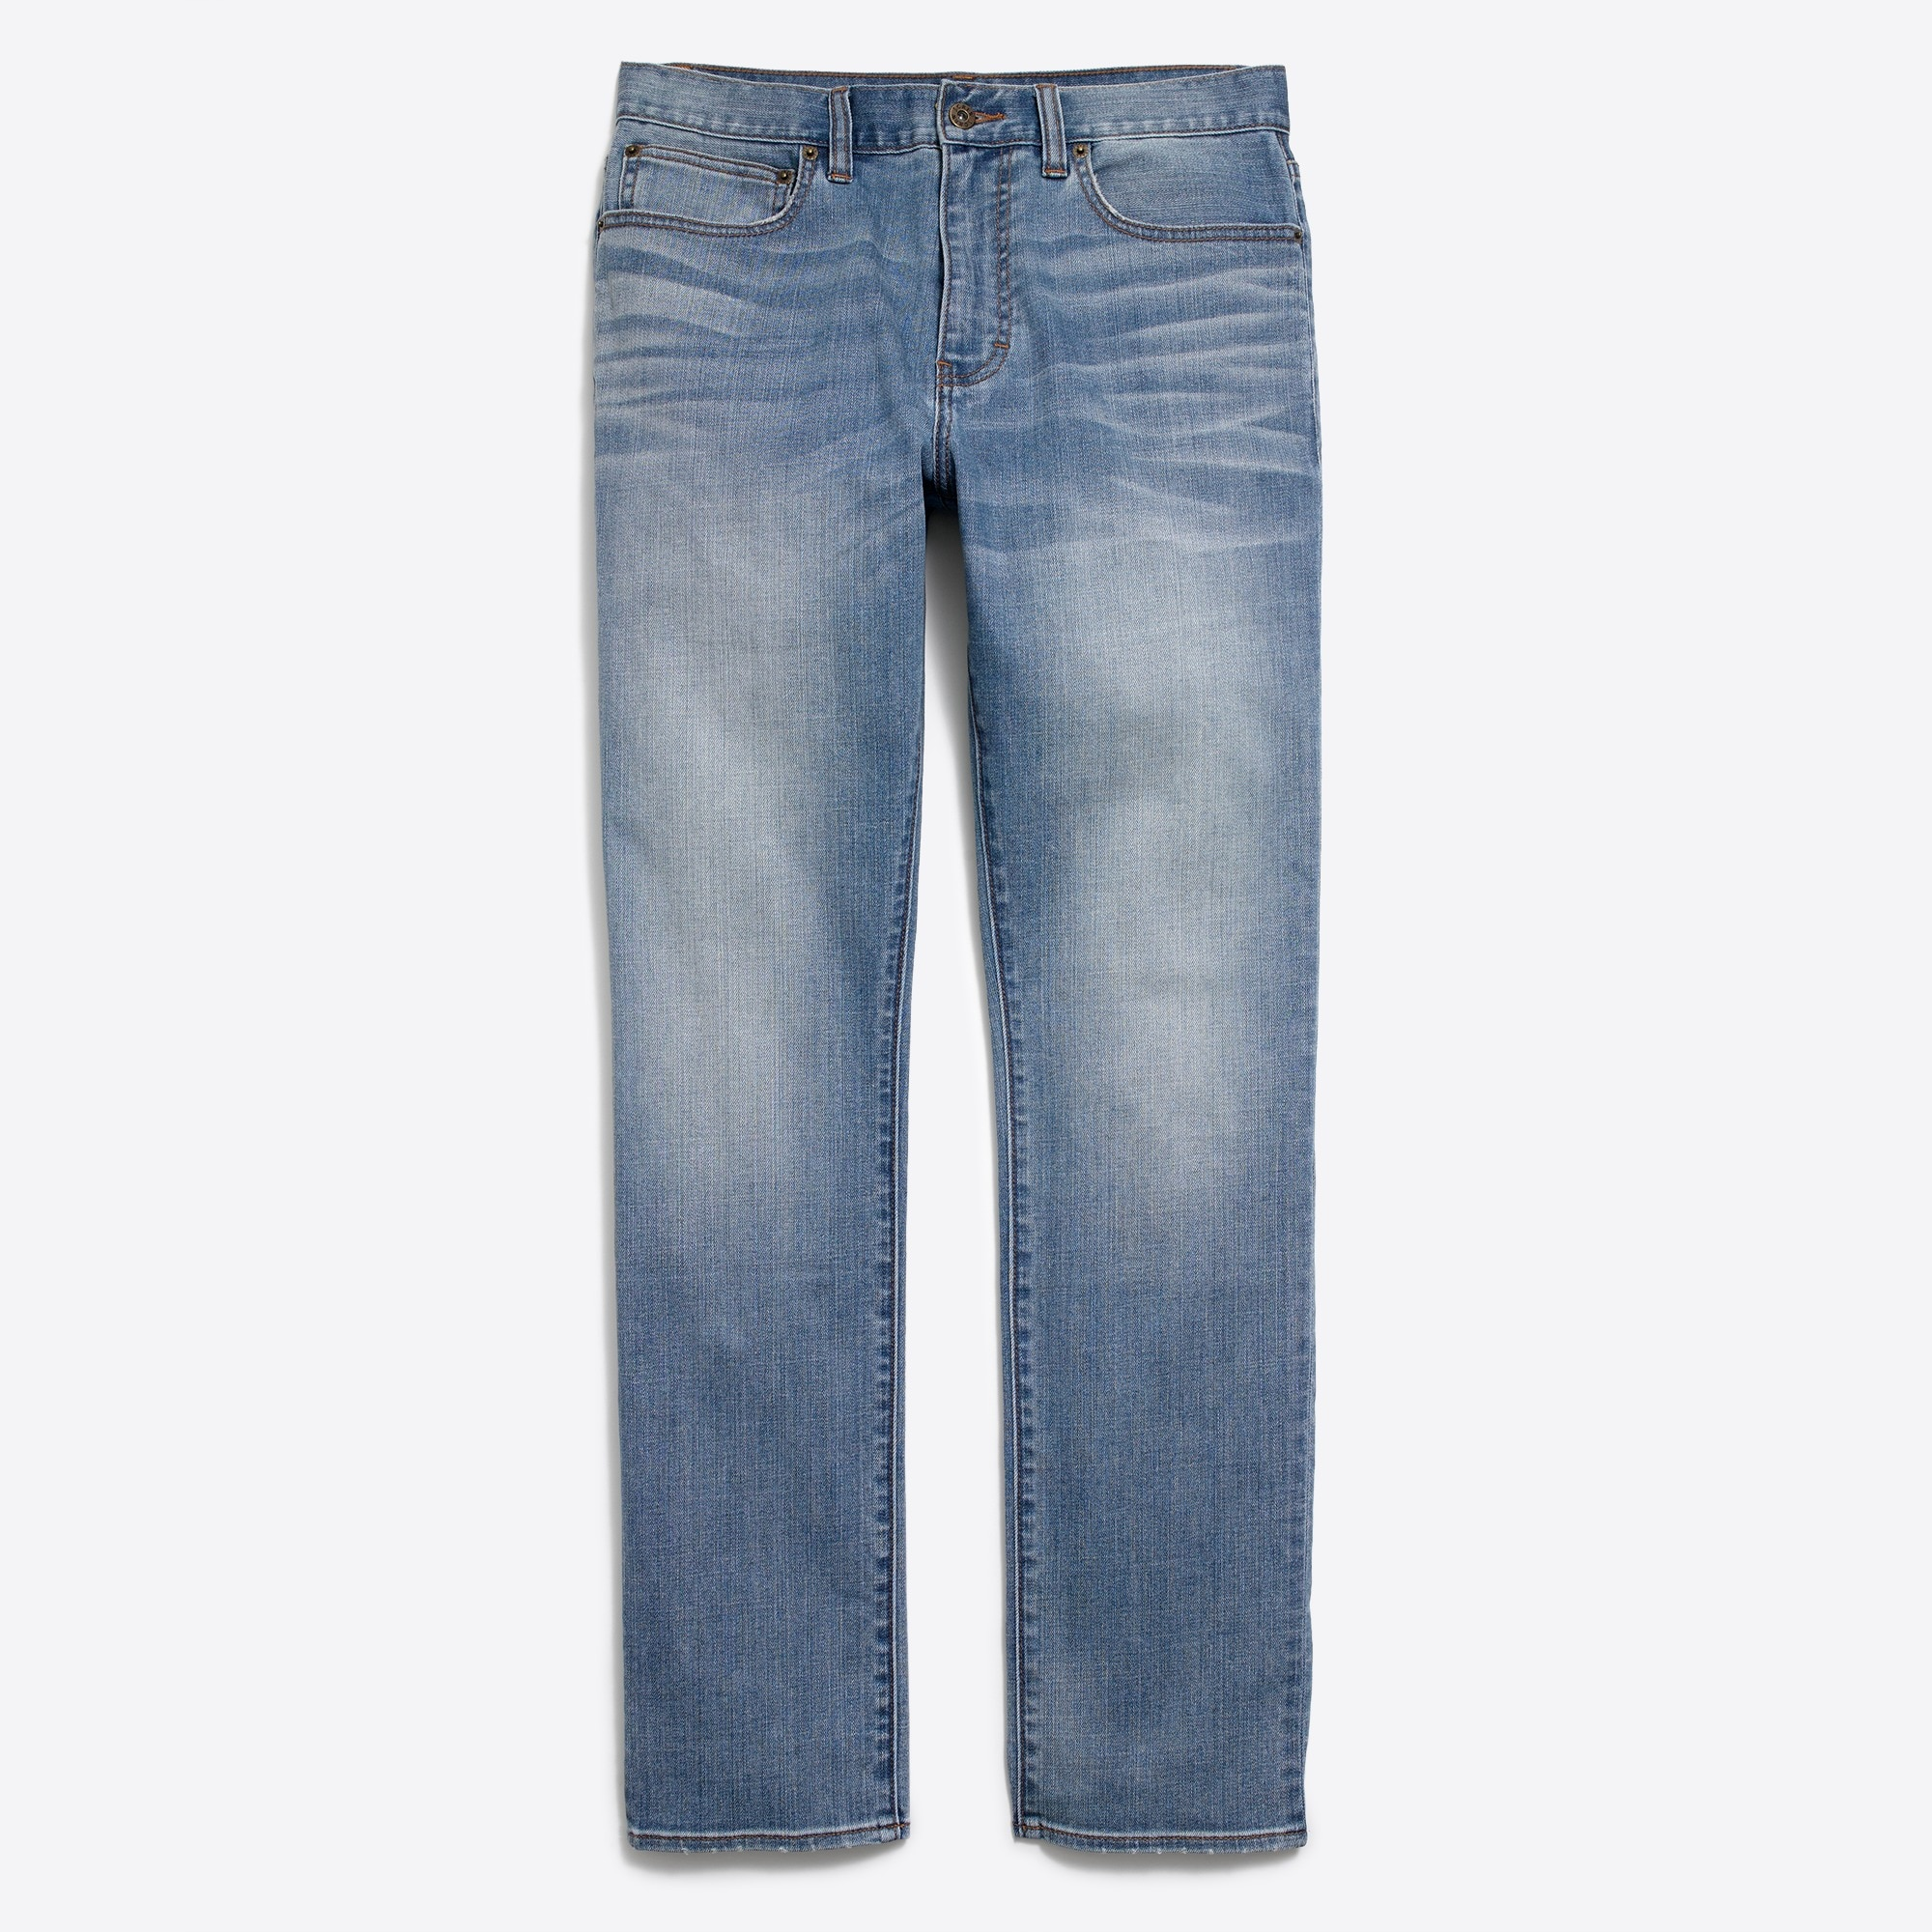 Athletic-fit flex jean in So Cal wash